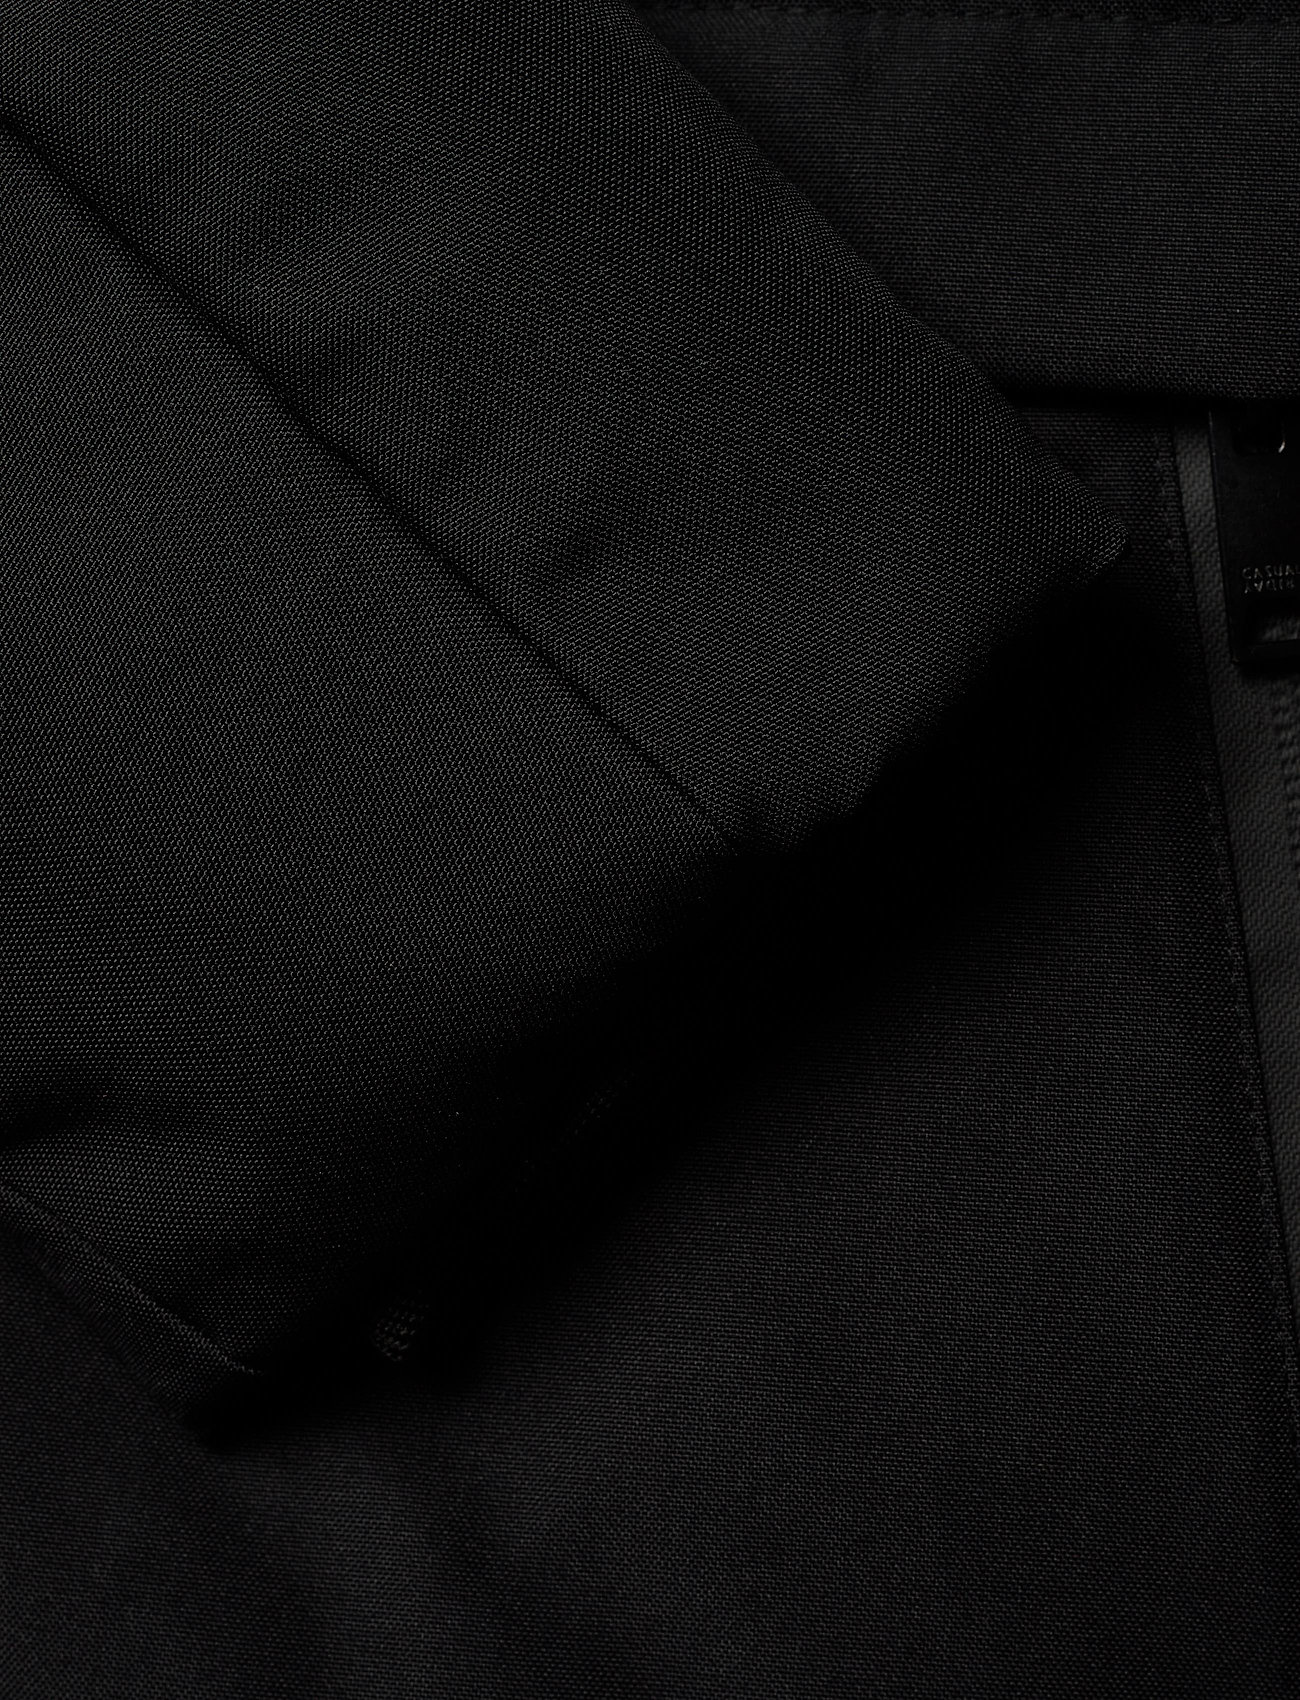 Orson Outerwear Parka Coat (Anthracite Black) (112.50 €) - Casual Friday D1CPv